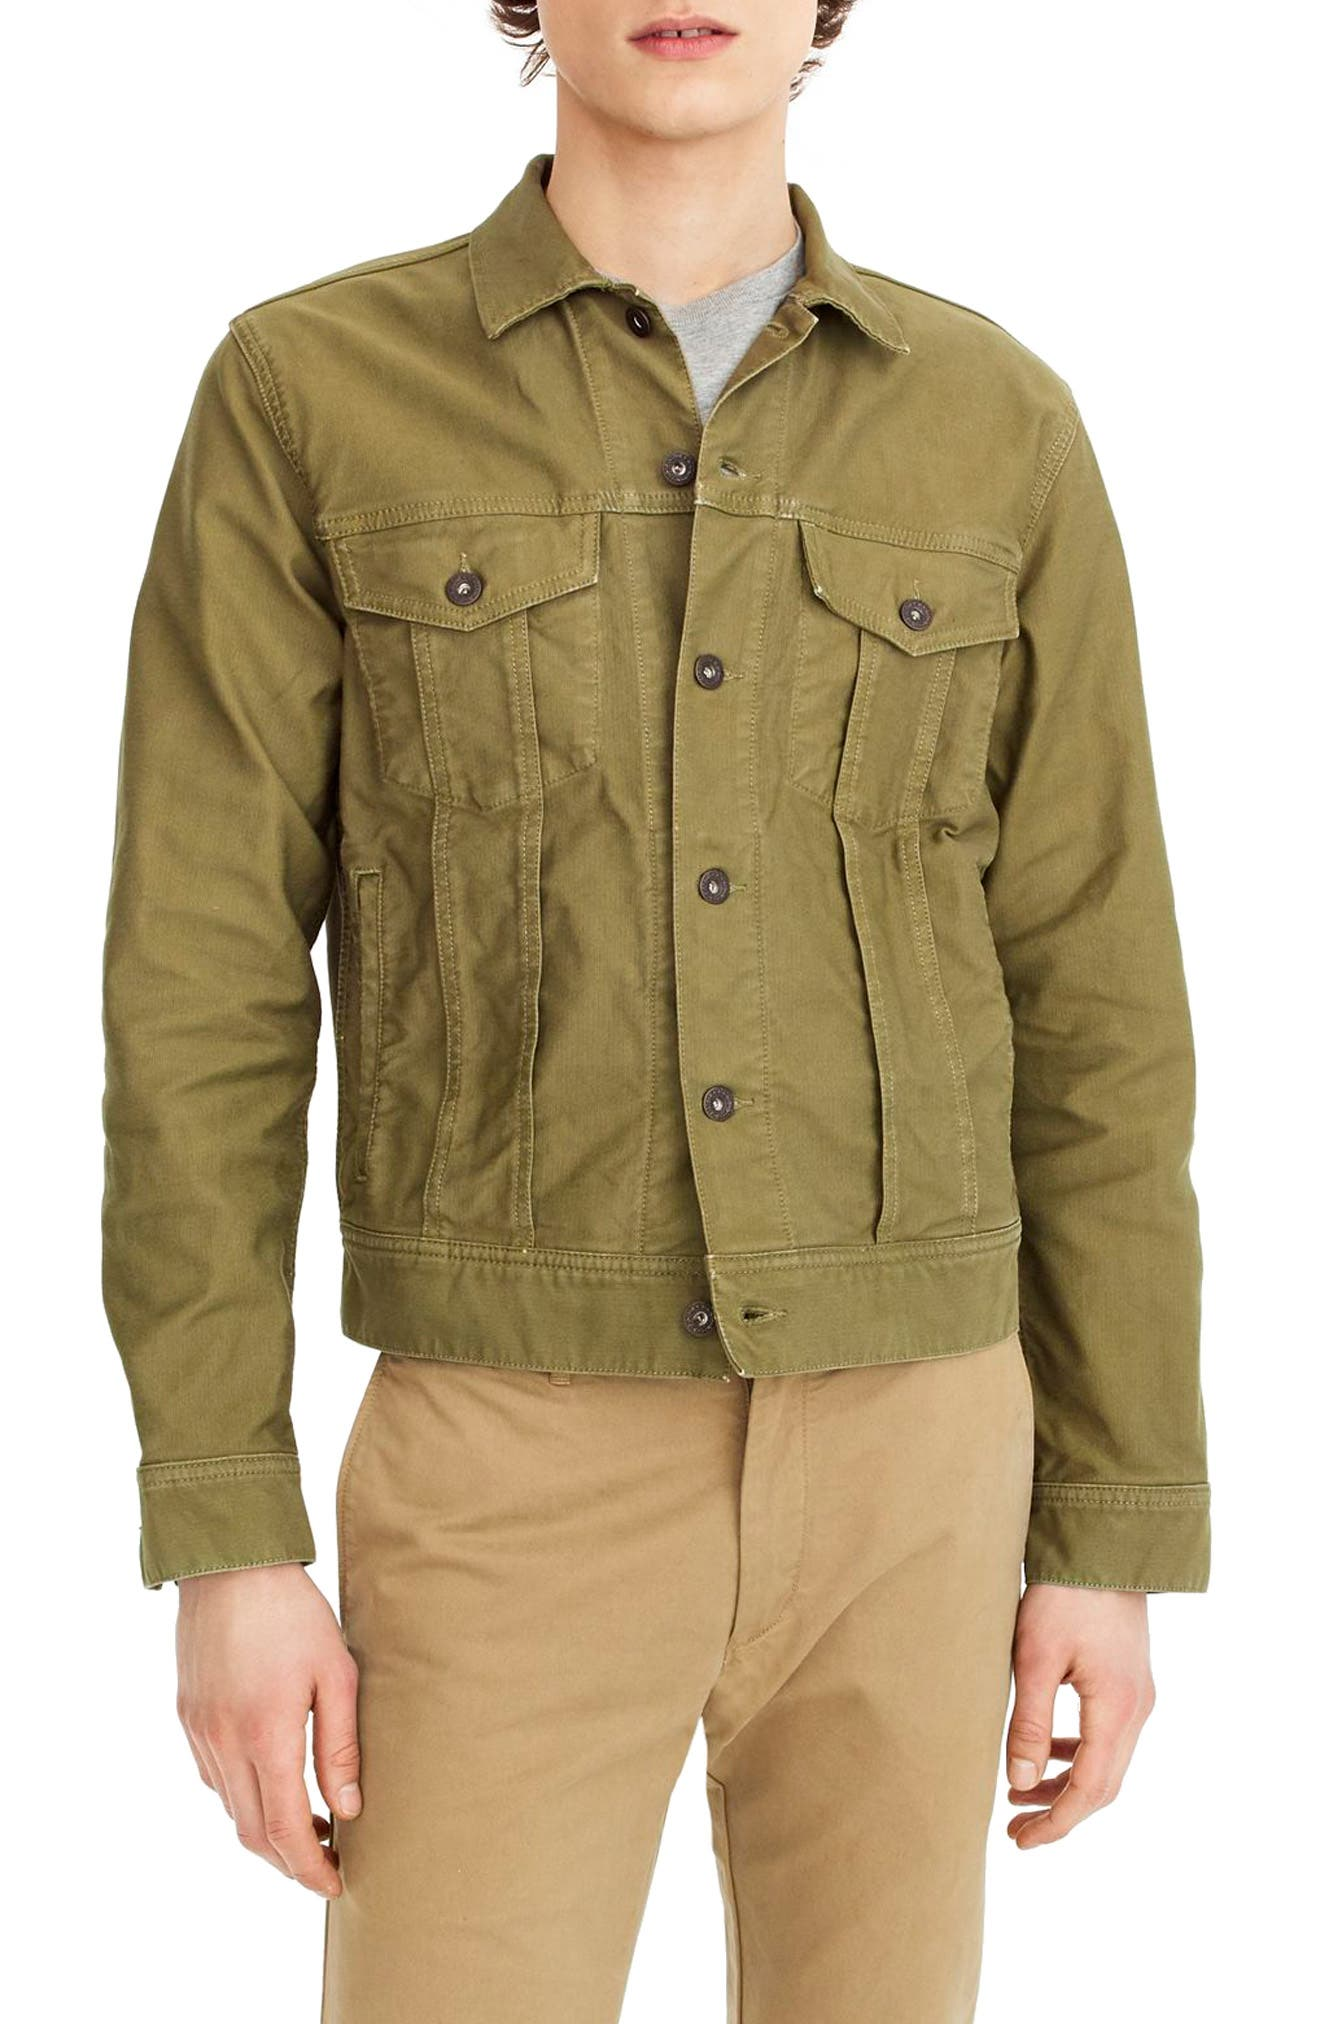 Alternate Image 1 Selected - J.Crew Garment Dyed Bedford Cord Trucker Jacket